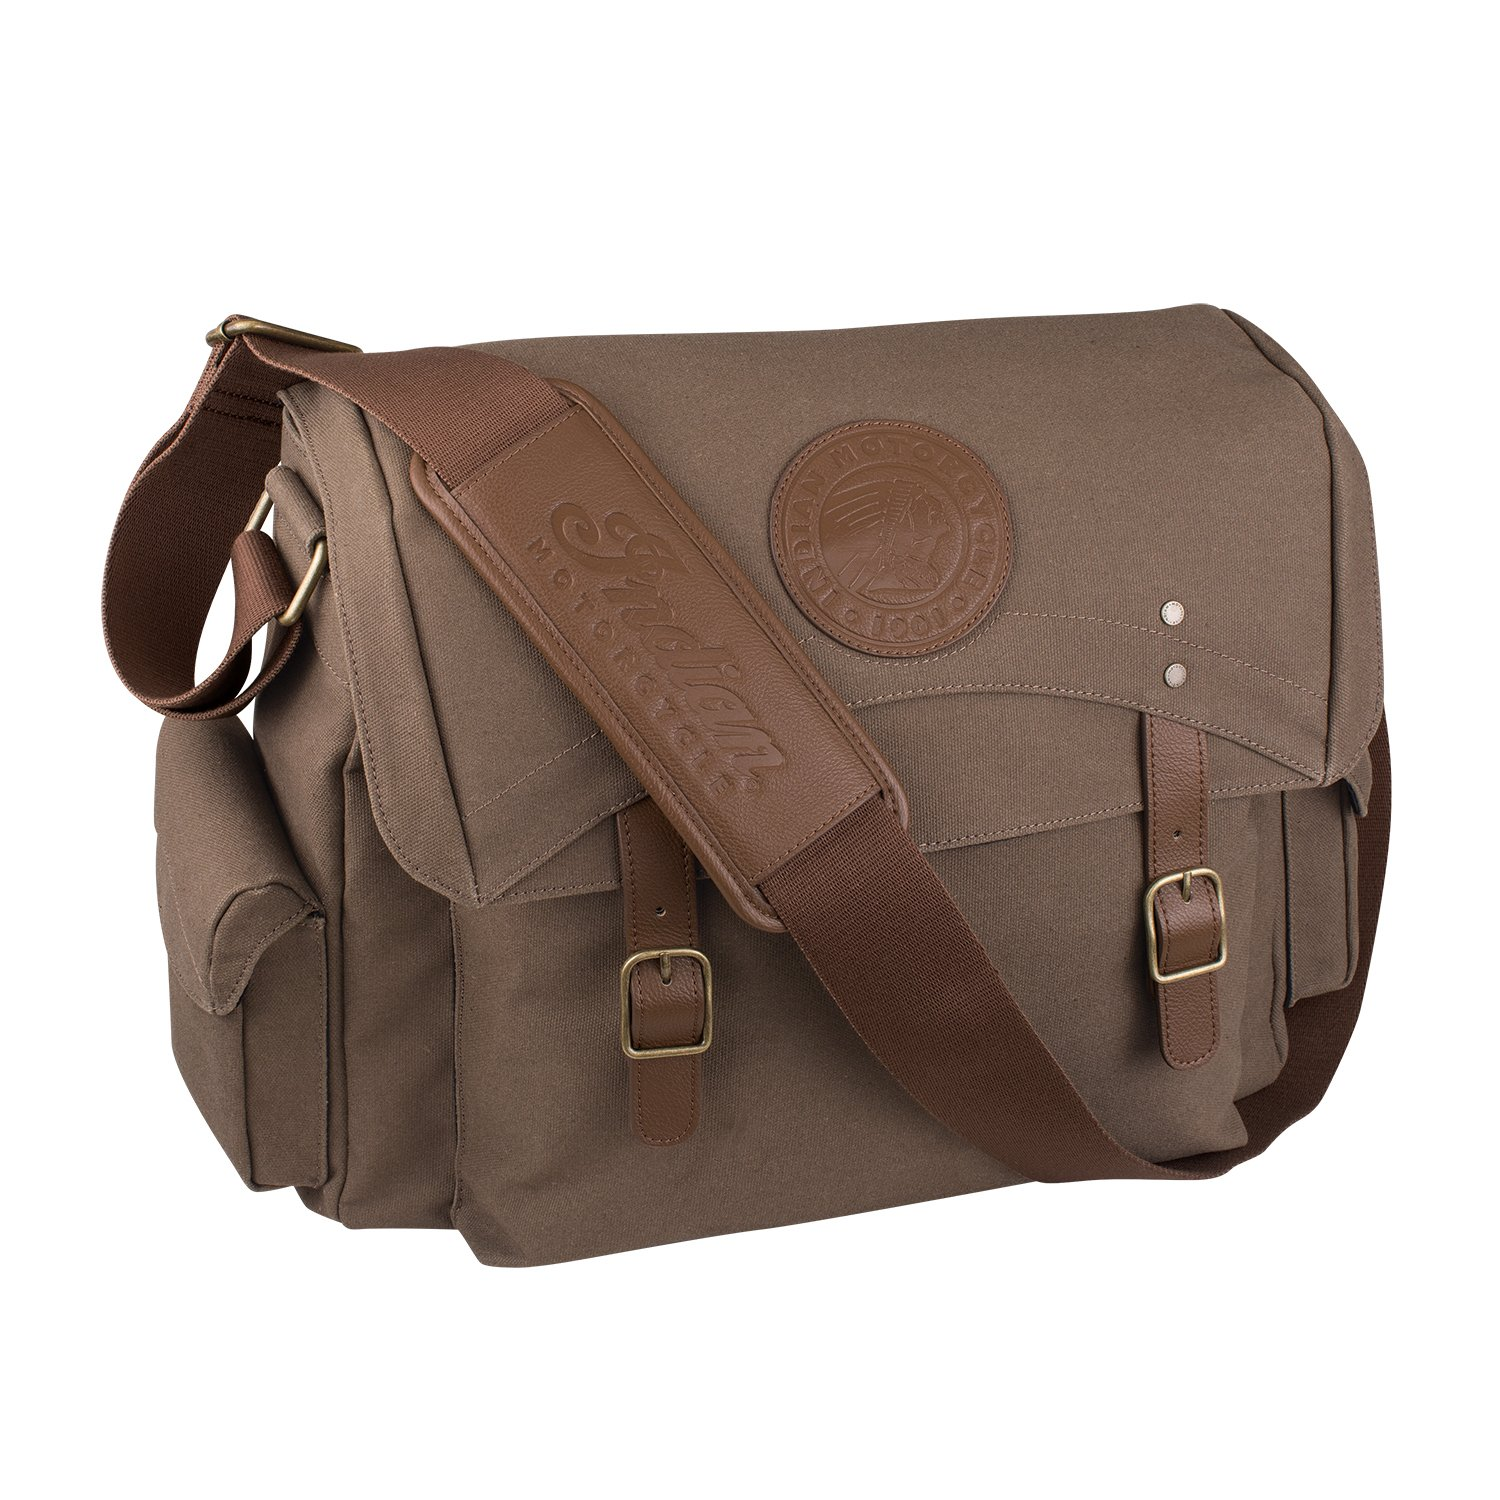 Waxed Cotton Messenger Bag, Olive